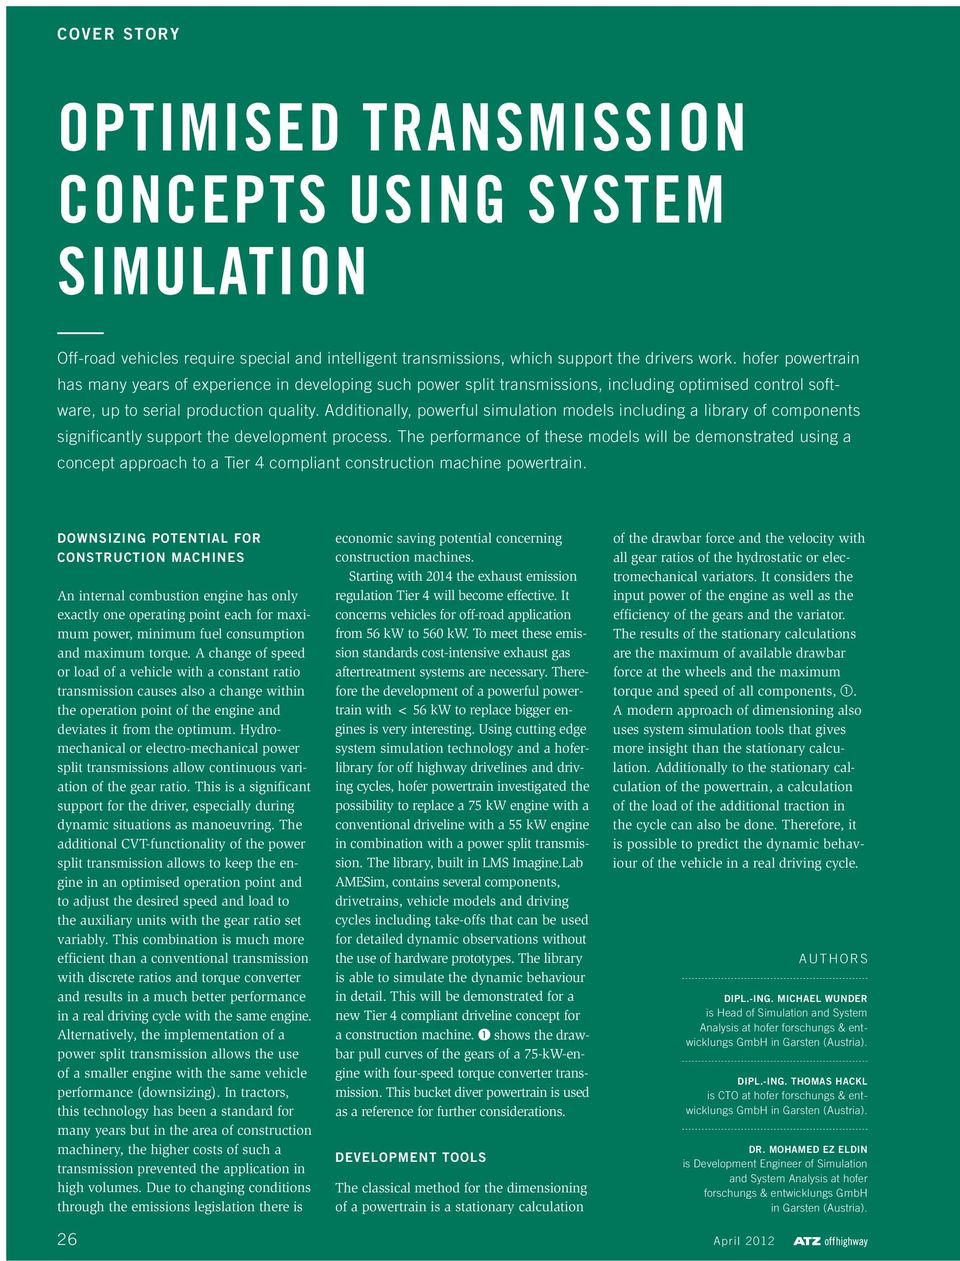 Additionally, powerful simulation models including a library of components significantly support the development process.